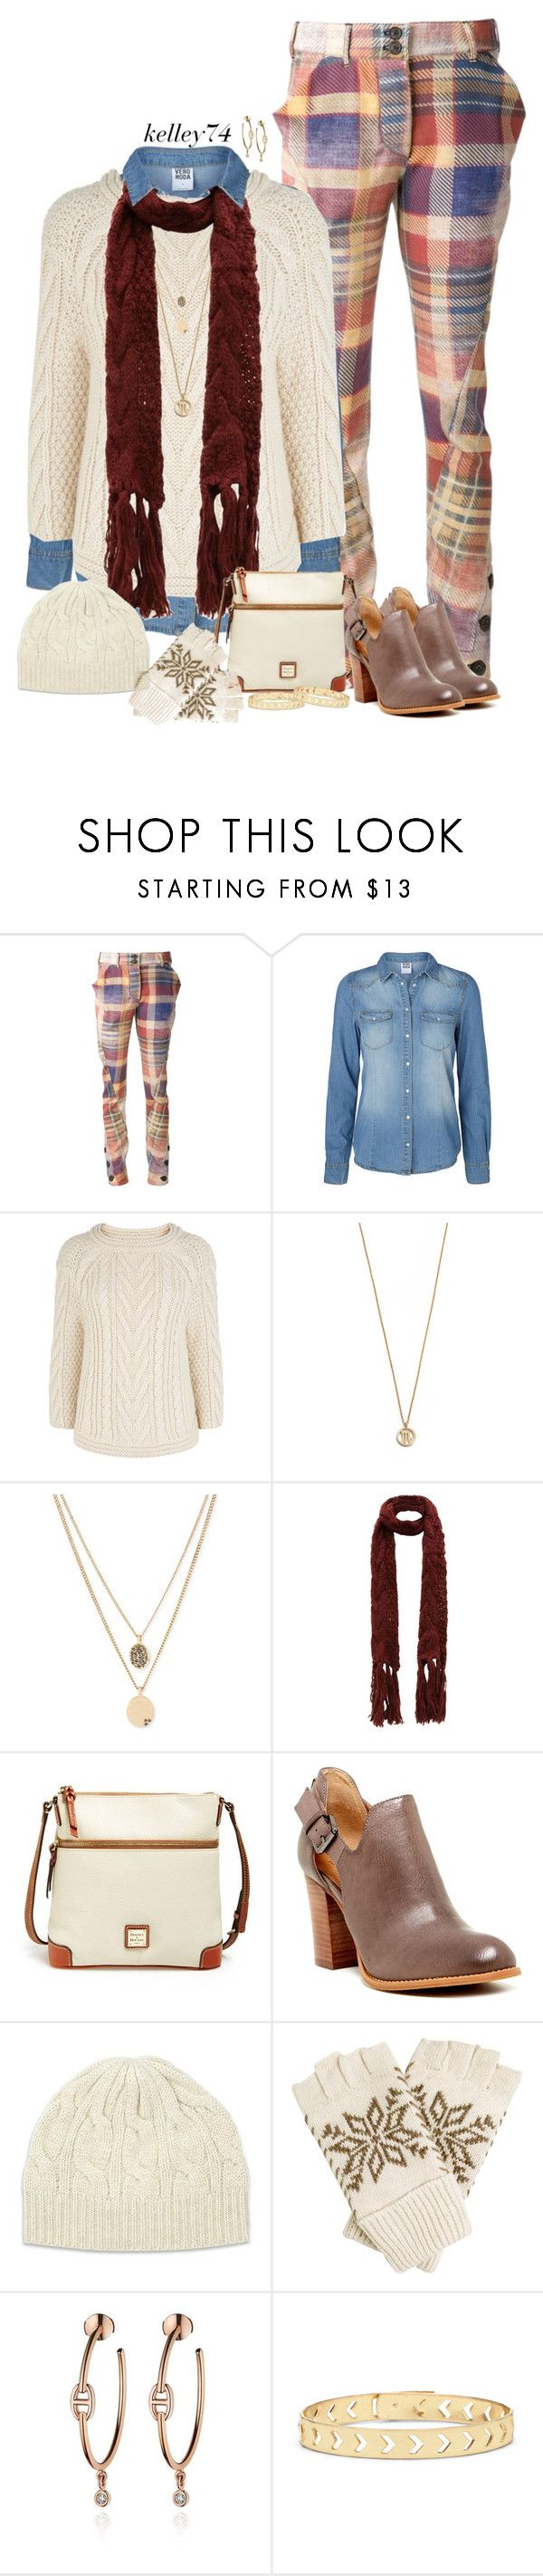 """""""Denim Under A Sweater"""" by kelley74 ❤ liked on Polyvore featuring Vivienne Westwood Anglomania, Vero Moda, Monsoon, Samantha Wills, Kenneth Cole, Dooney & Bourke, 14th & Union, Johnstons of Elgin and Sole Society"""